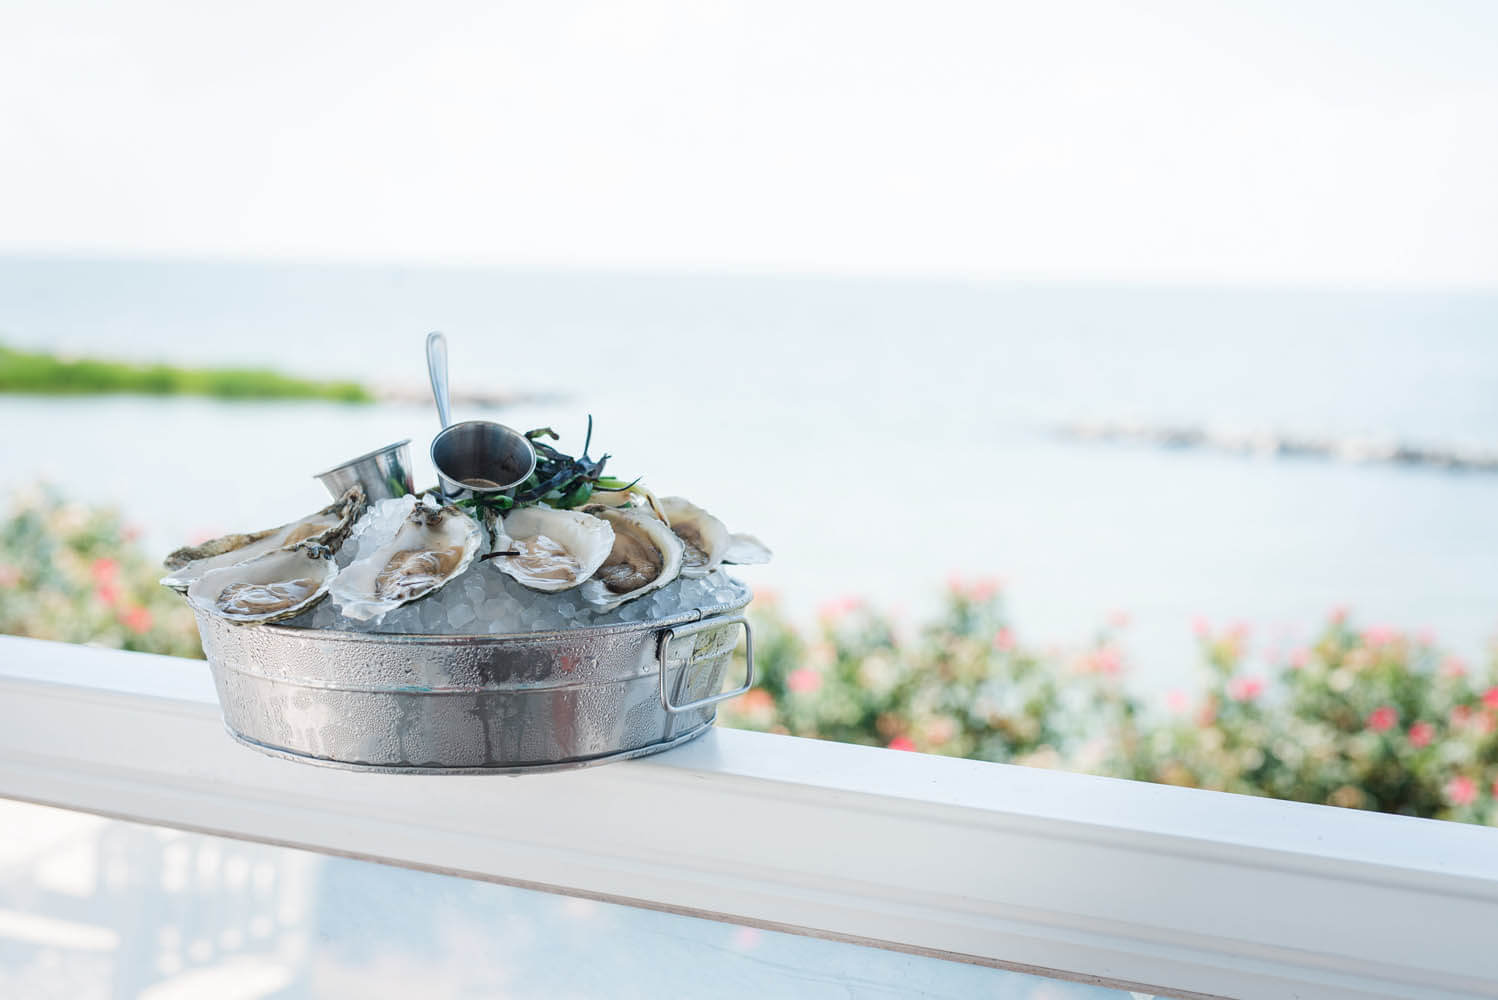 Close up of a plate with ice and mussels, beach in the background